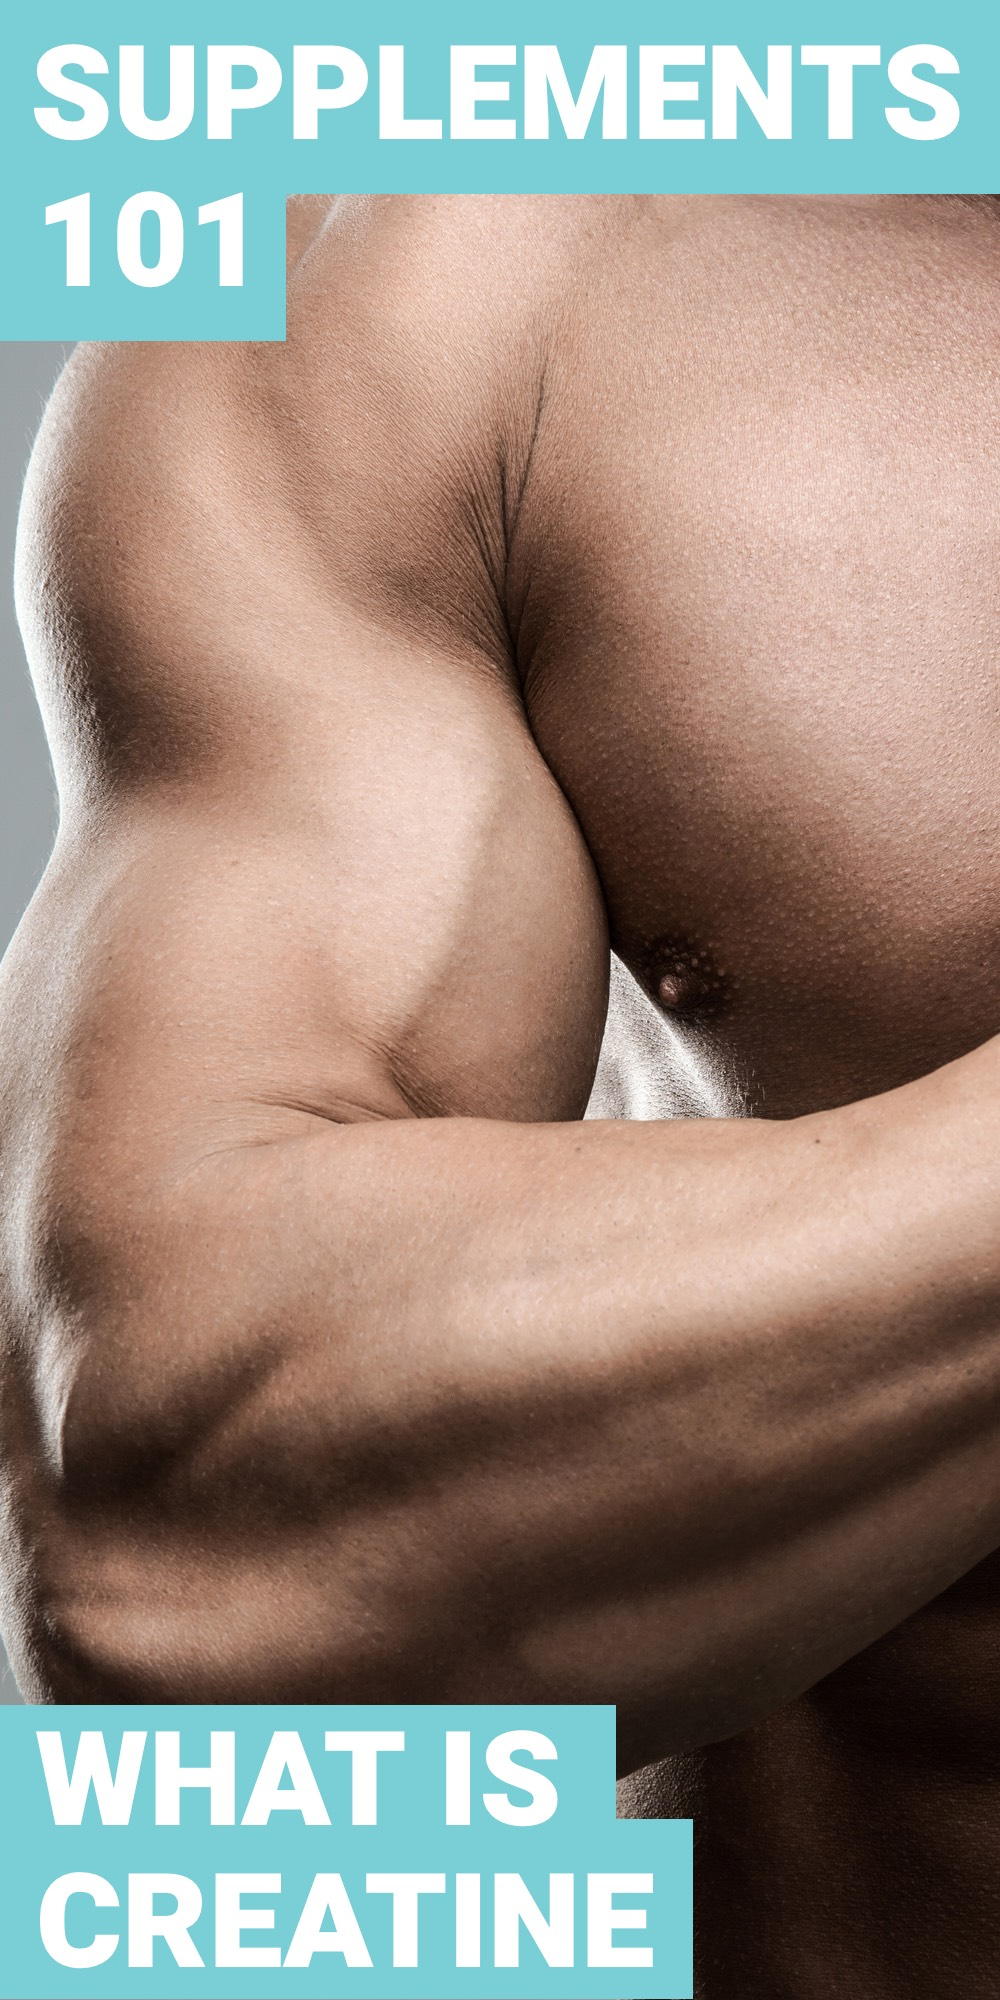 Creatine has multiple uses. But what is creatine? What are the benefits of creatine? Find out here.